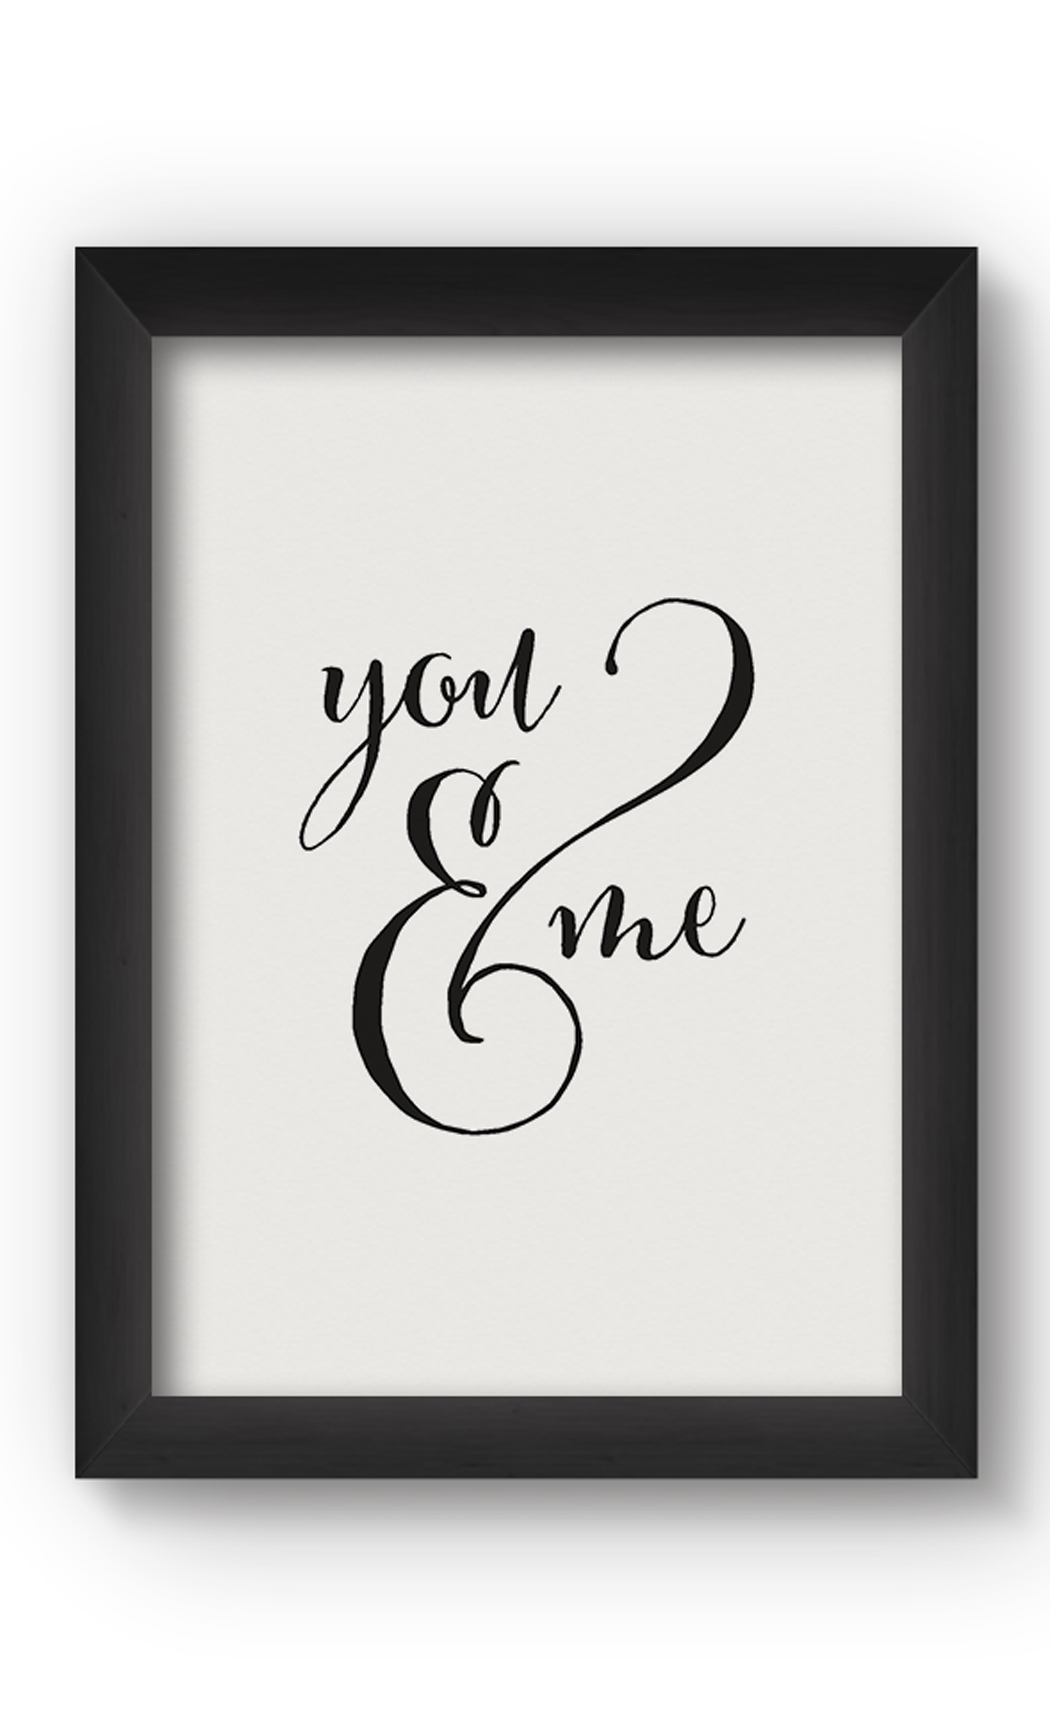 Black & White YOU AND ME Poster. Buy Online.